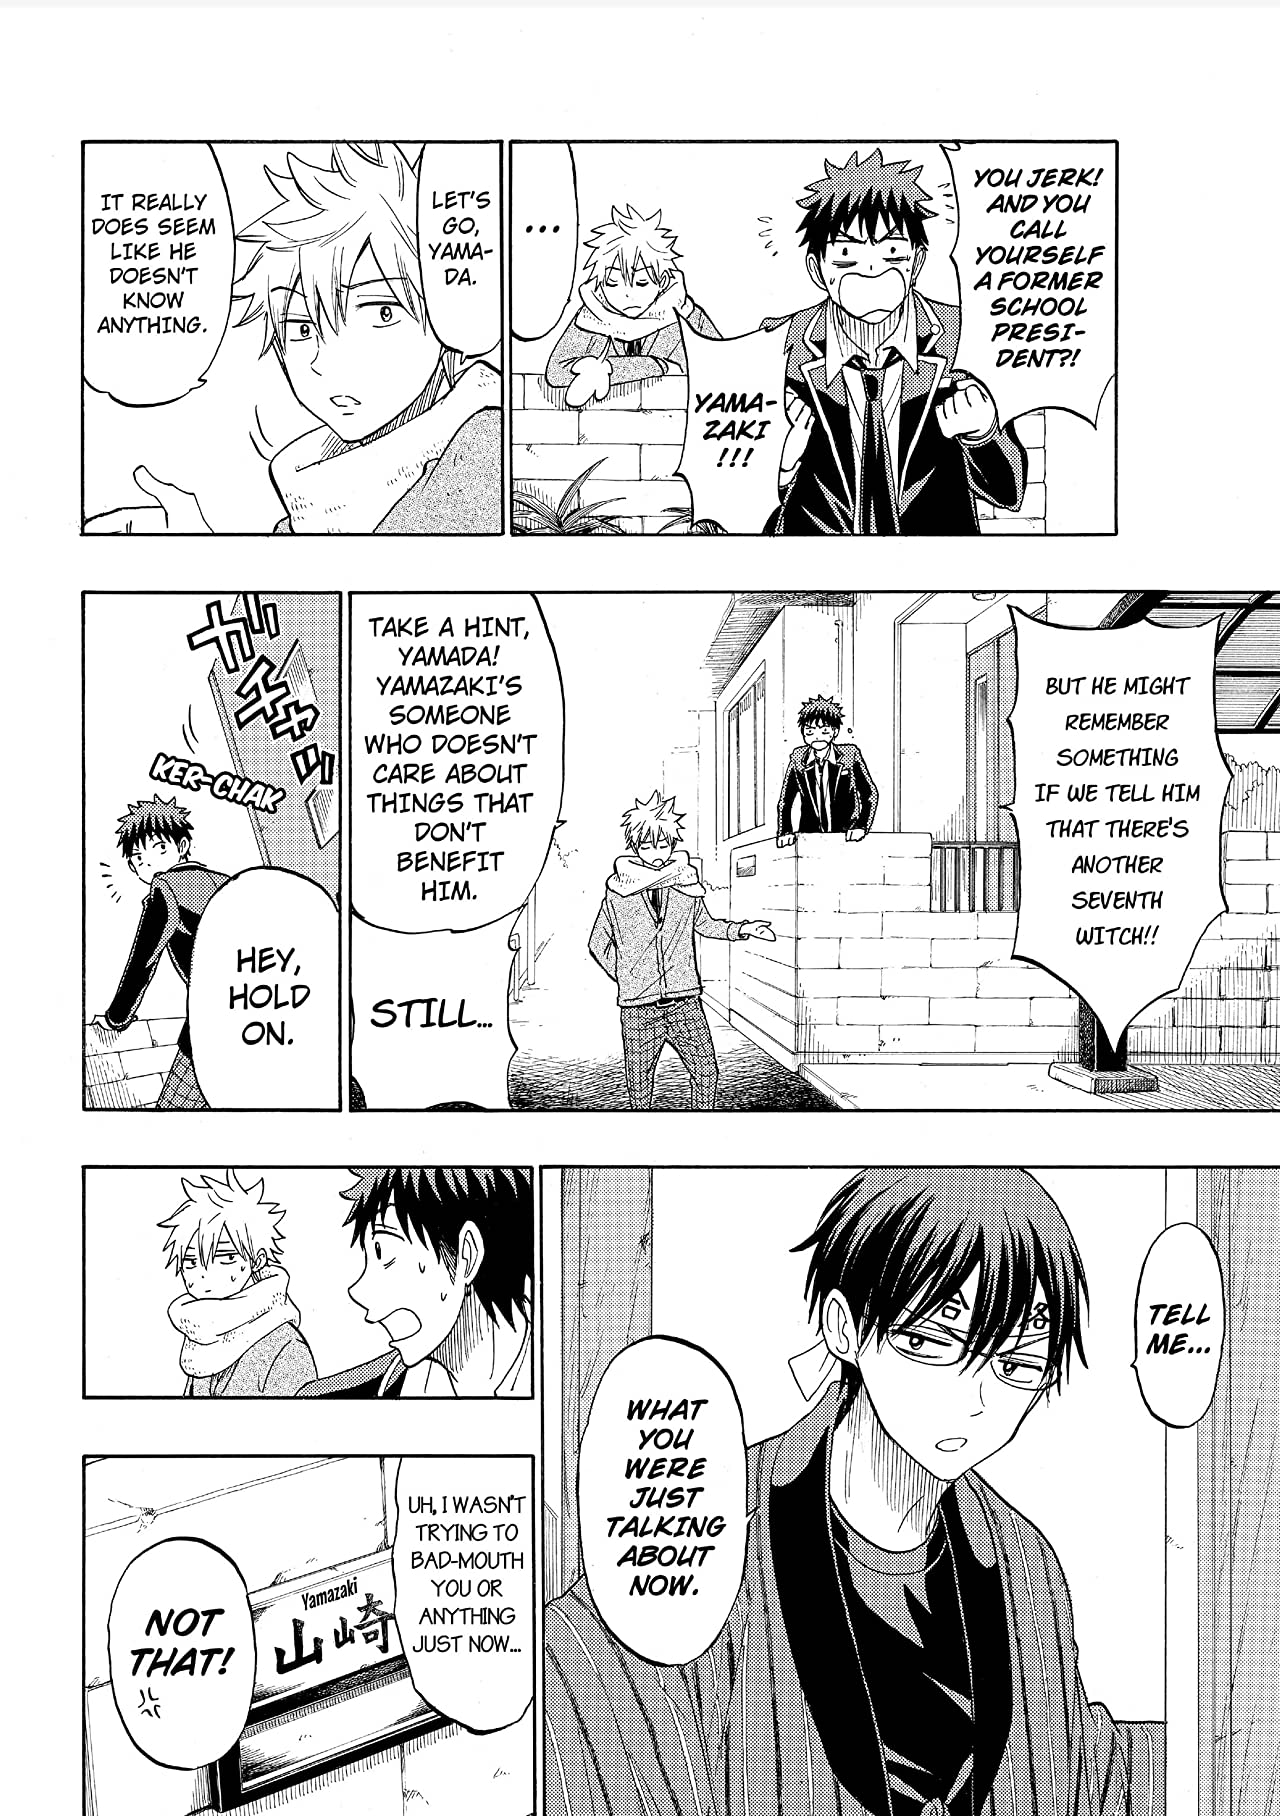 Yamada-kun and the Seven Witches #130